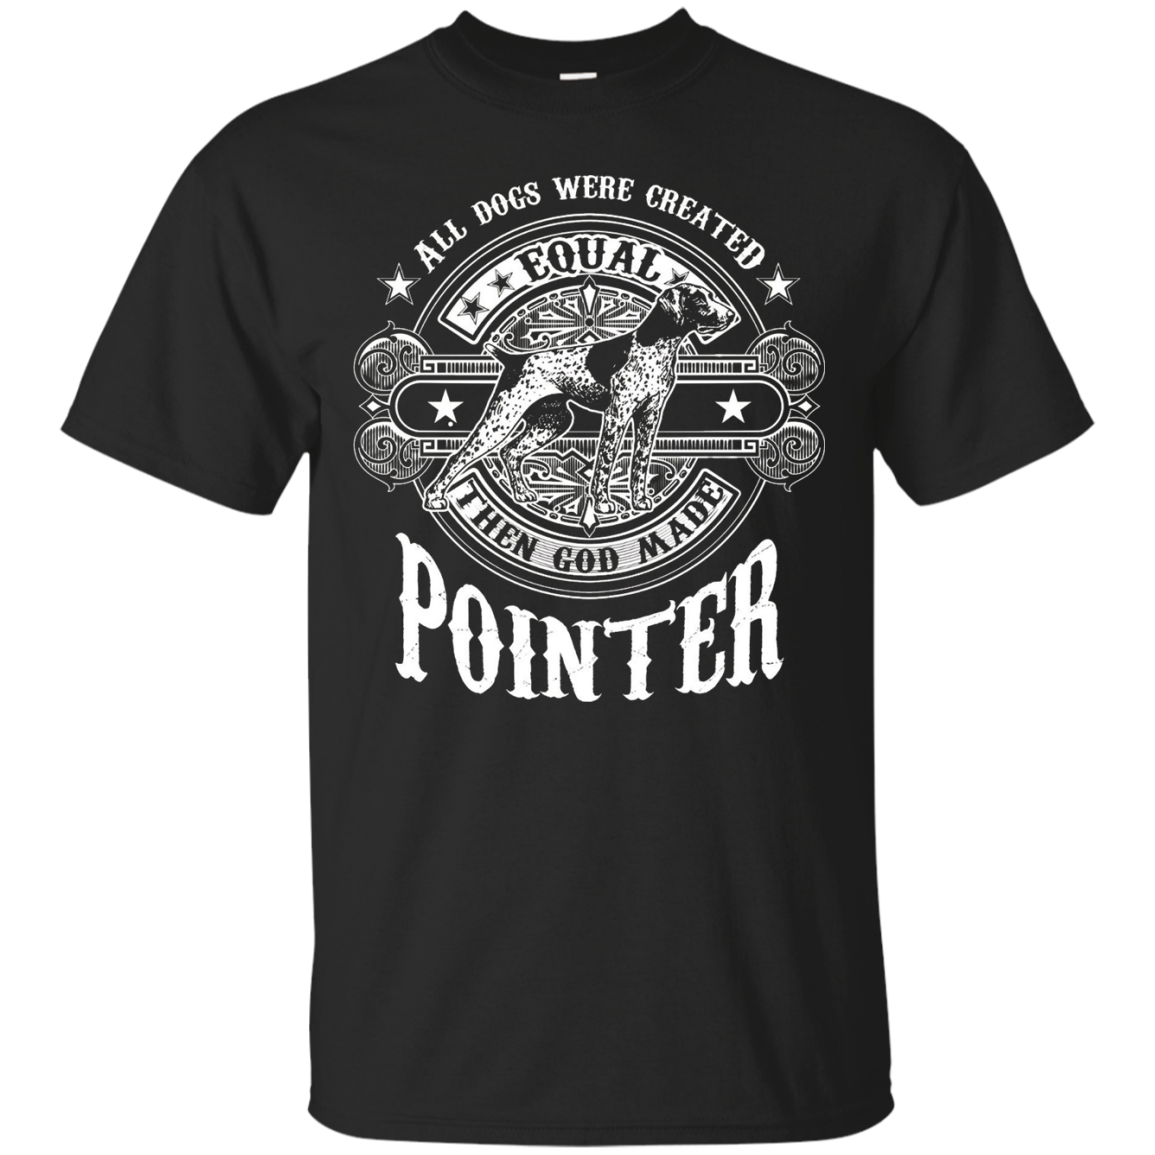 All Dogs Are Equal Then God Made Pointer Dog Gift T-Shirt